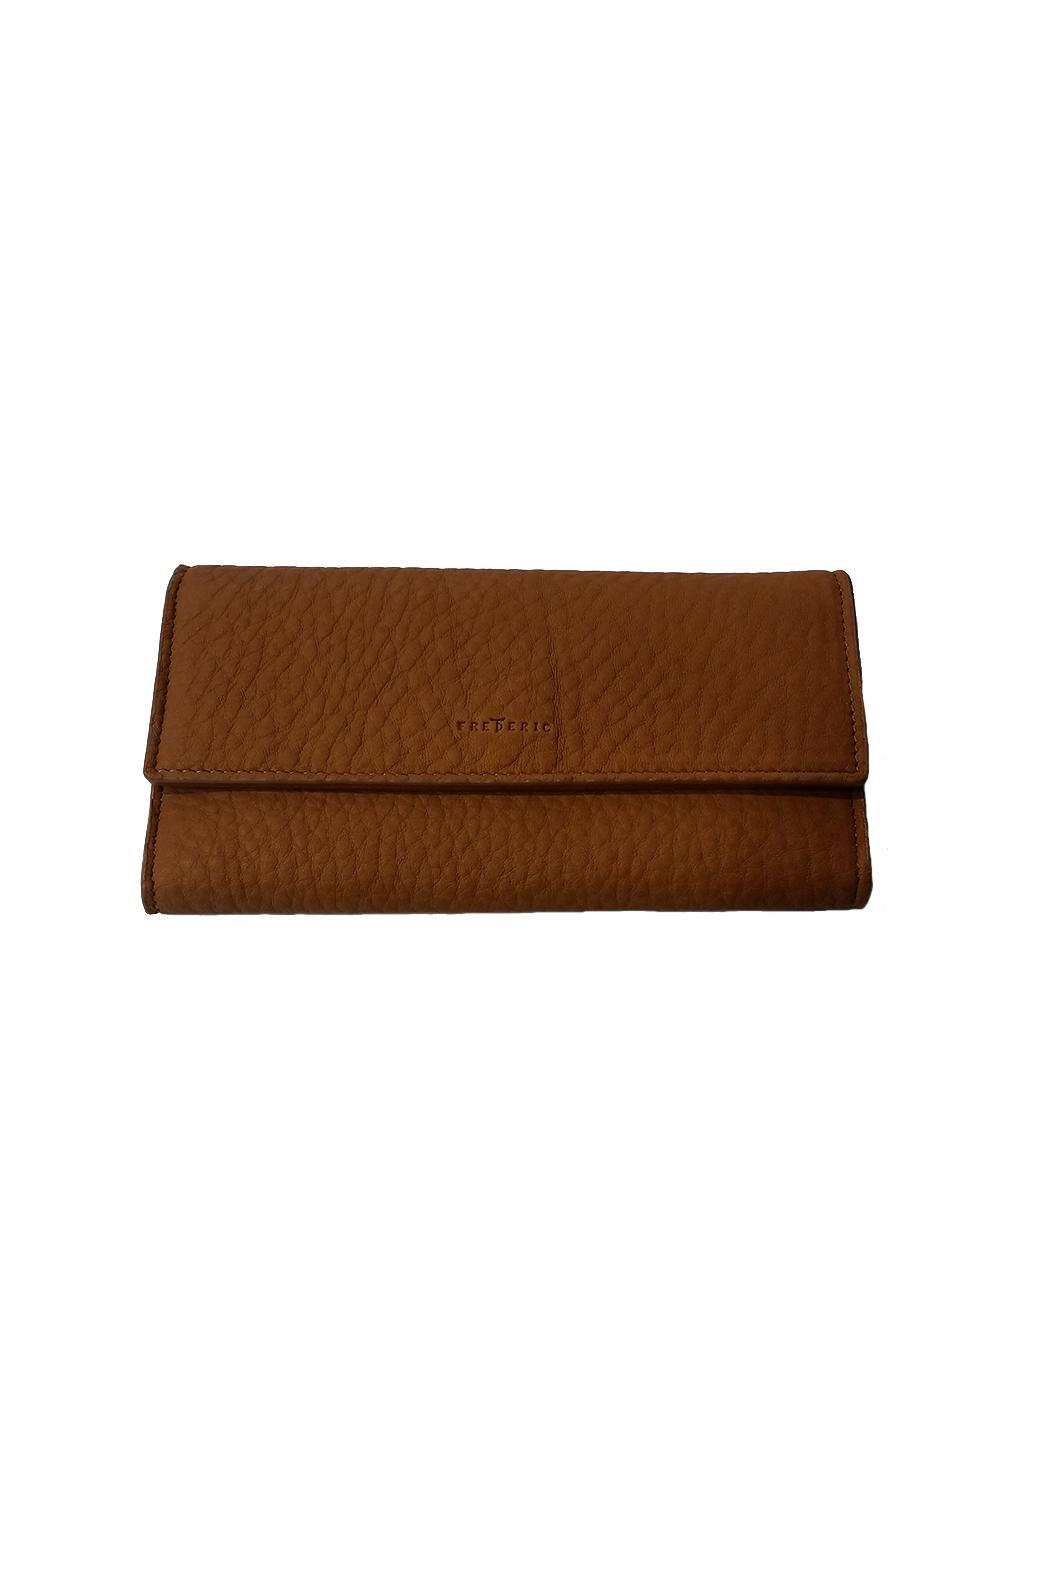 FREDERIC PARIS Brown Leather Wallet - Main Image